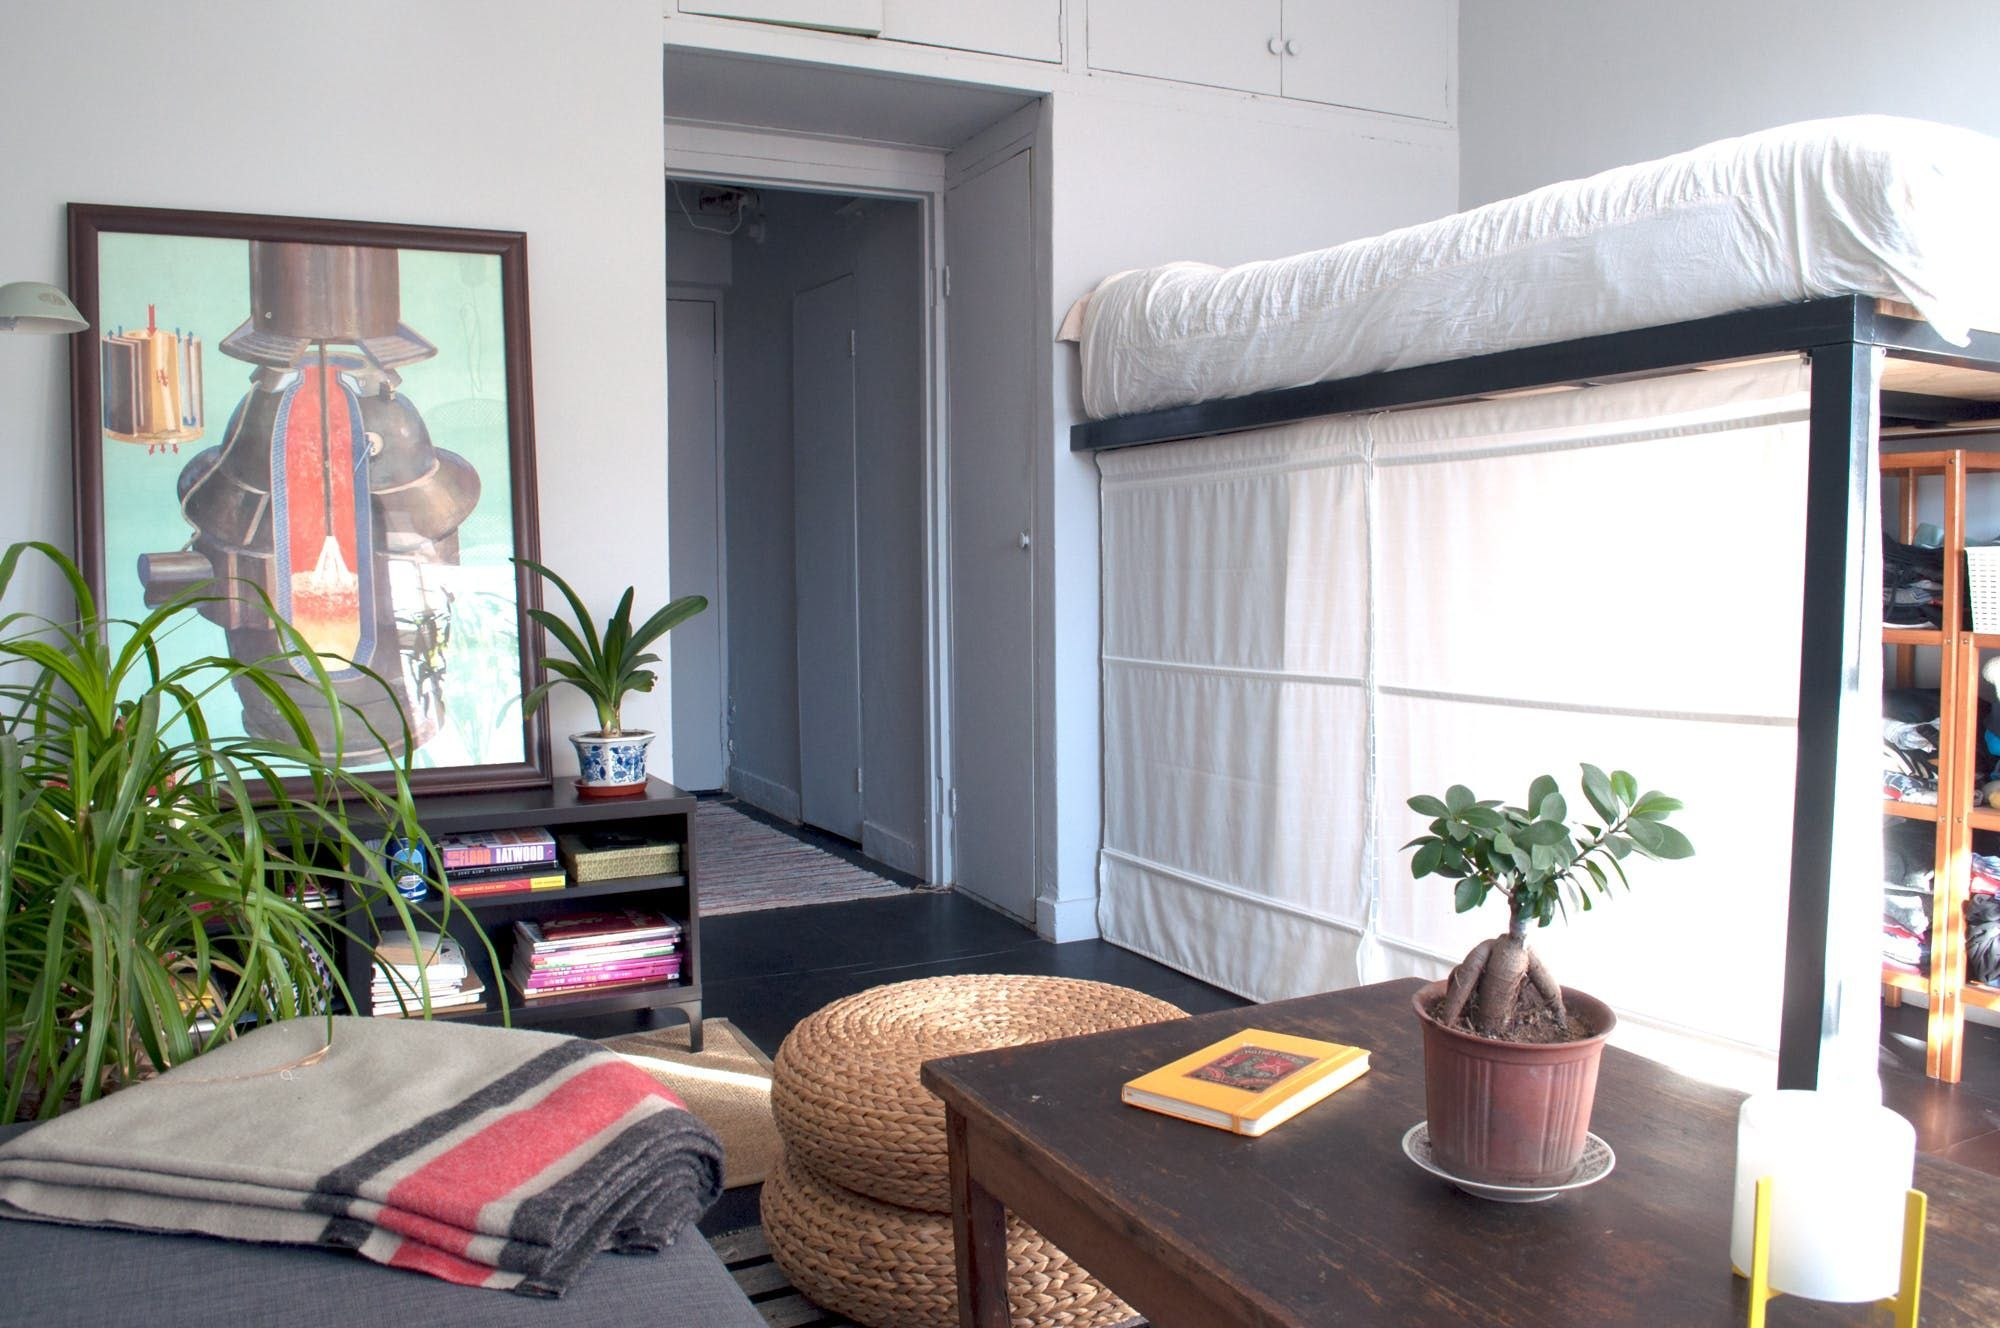 Loft bed curtain ideas  A white curtain from IKEA separates the wardrobe under the loft bed